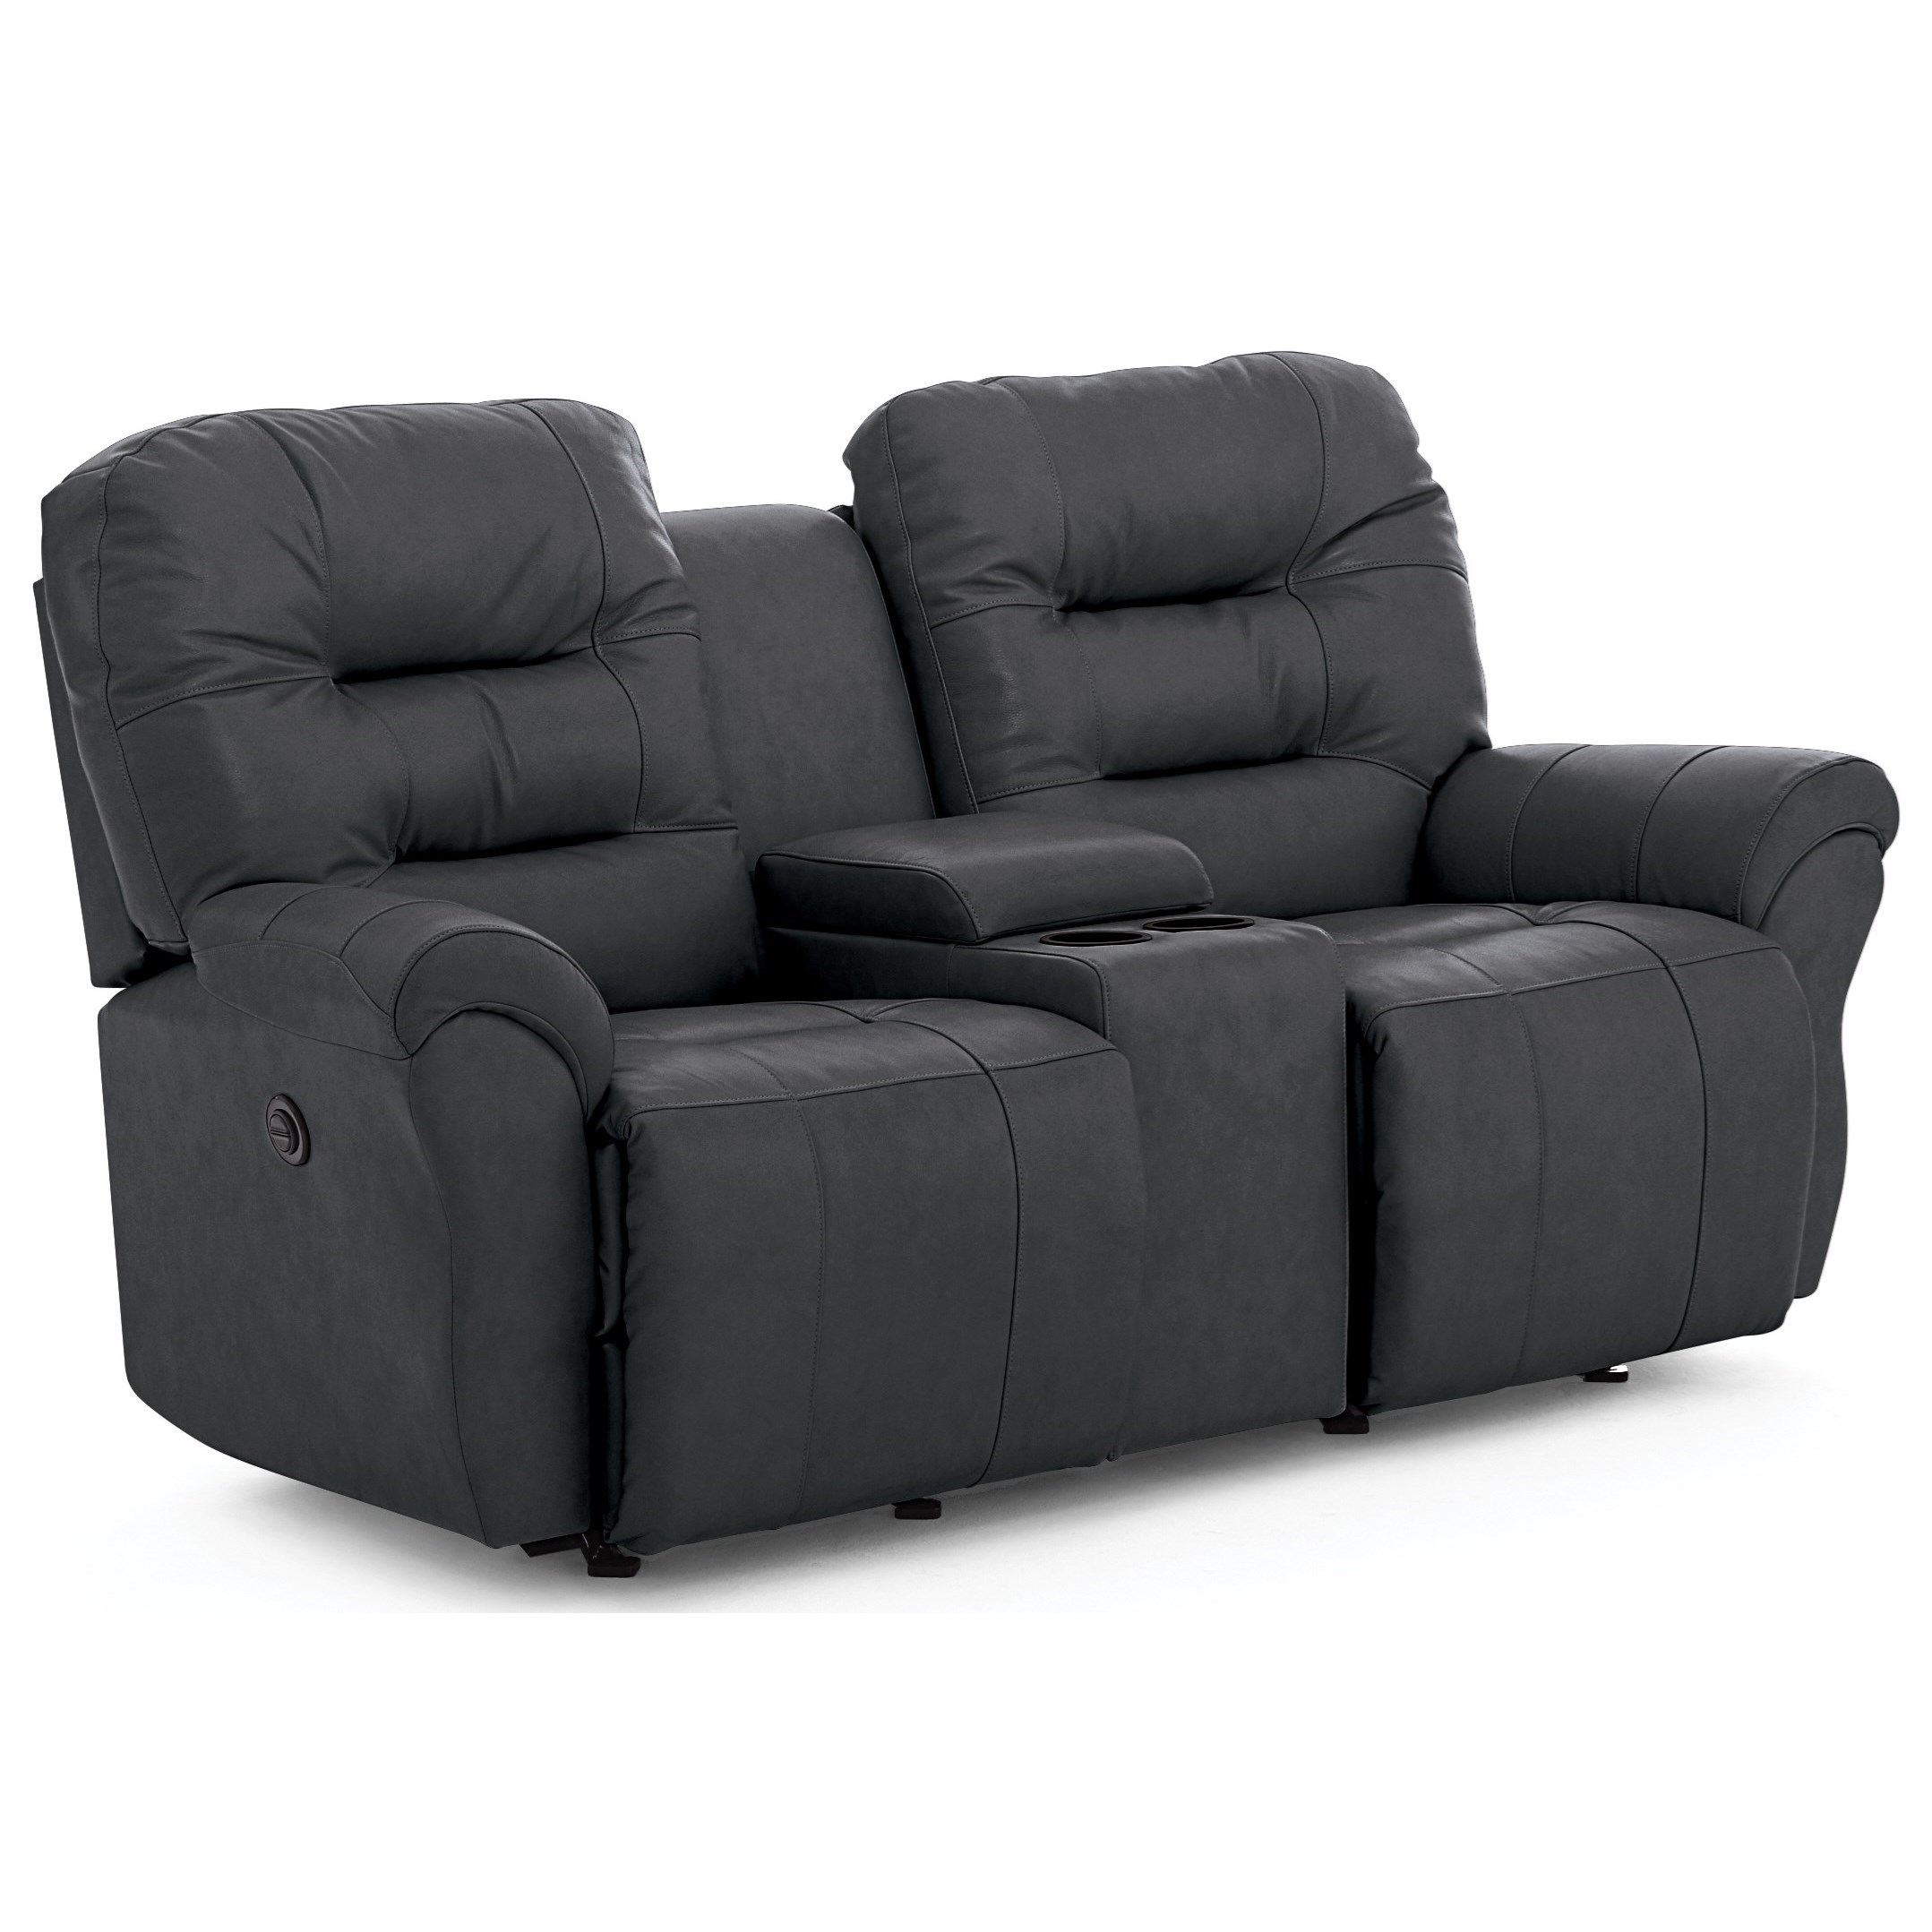 Unity Space Saver Console Loveseat Chaise by Best Home Furnishings at Baer's Furniture